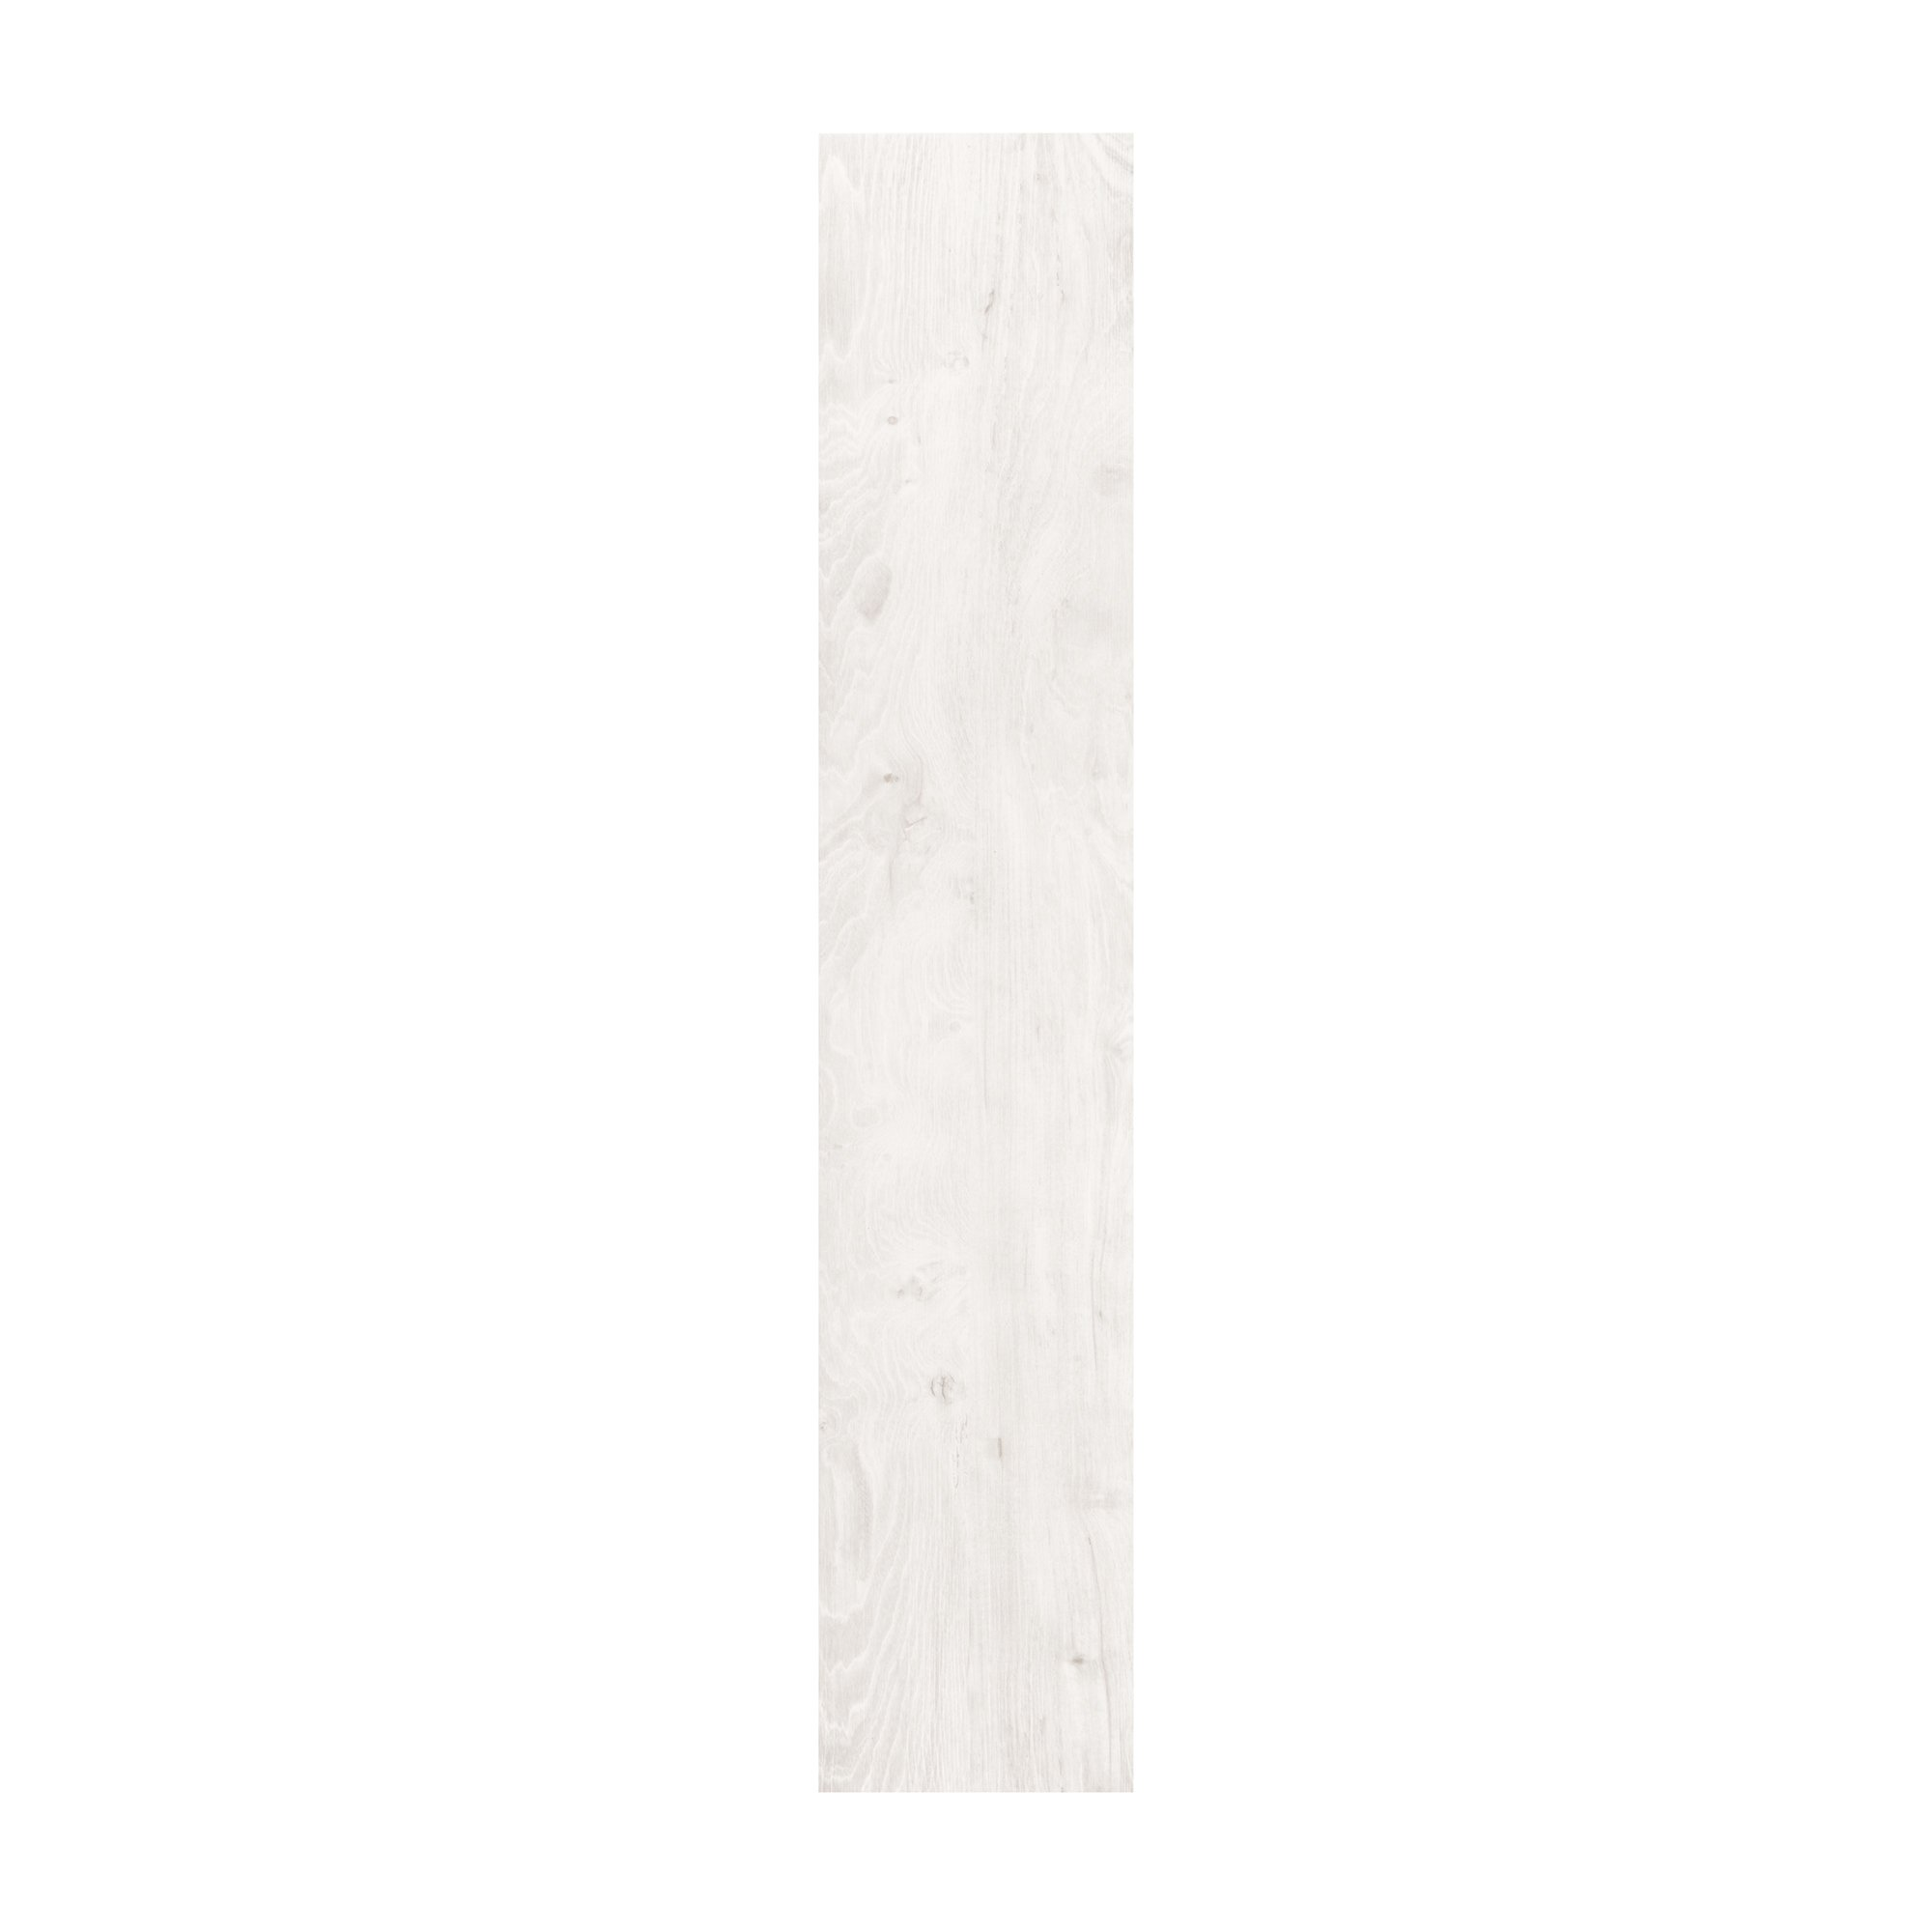 Achim Home Furnishings LSLYP10408 Flex Flor Looselay Vinyl Plank 9in x 48in 8 Planks/24 sq. ft. Flooring, Whitewash